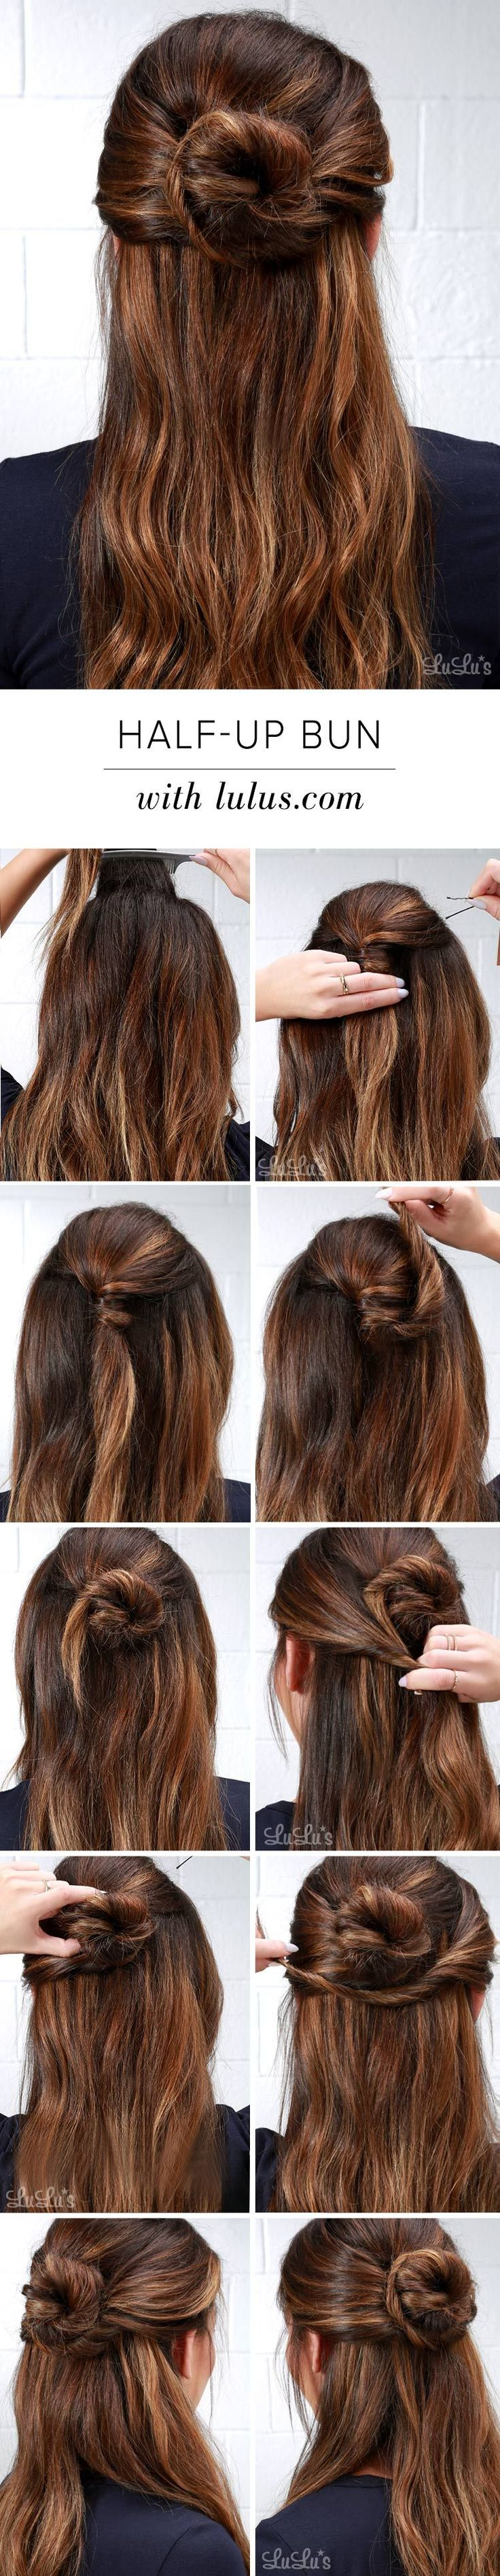 1. Begin with wavy hair, create volume by backcombing under the crown.  2. Loosely twist back the hair from the crown of your hair, leave out pieces on both sides framing your face.  3. Center the twisted piece & pin.  4. Carefully twist the ponytail up & counterclockwise.  5. Your twist should now look like a bun.  6. Hold the bun in place and pin underneath.  7. Combine the left front hair to the tail of the bun as shown.  8. Use the remaining front hair on right to twist back & under the…